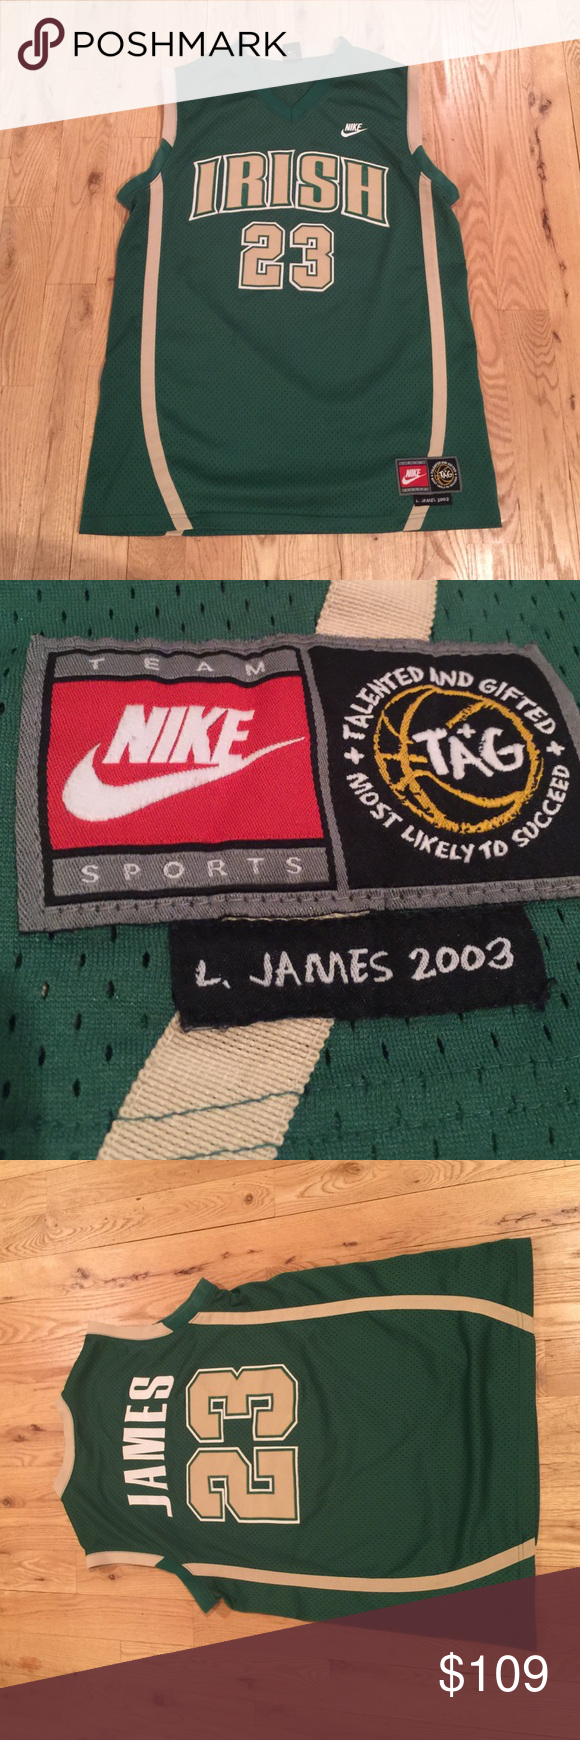 91f064f7c ... discount lebron james high school jersey 100 authentic vintage lebron  james high school jersey 100 authentic